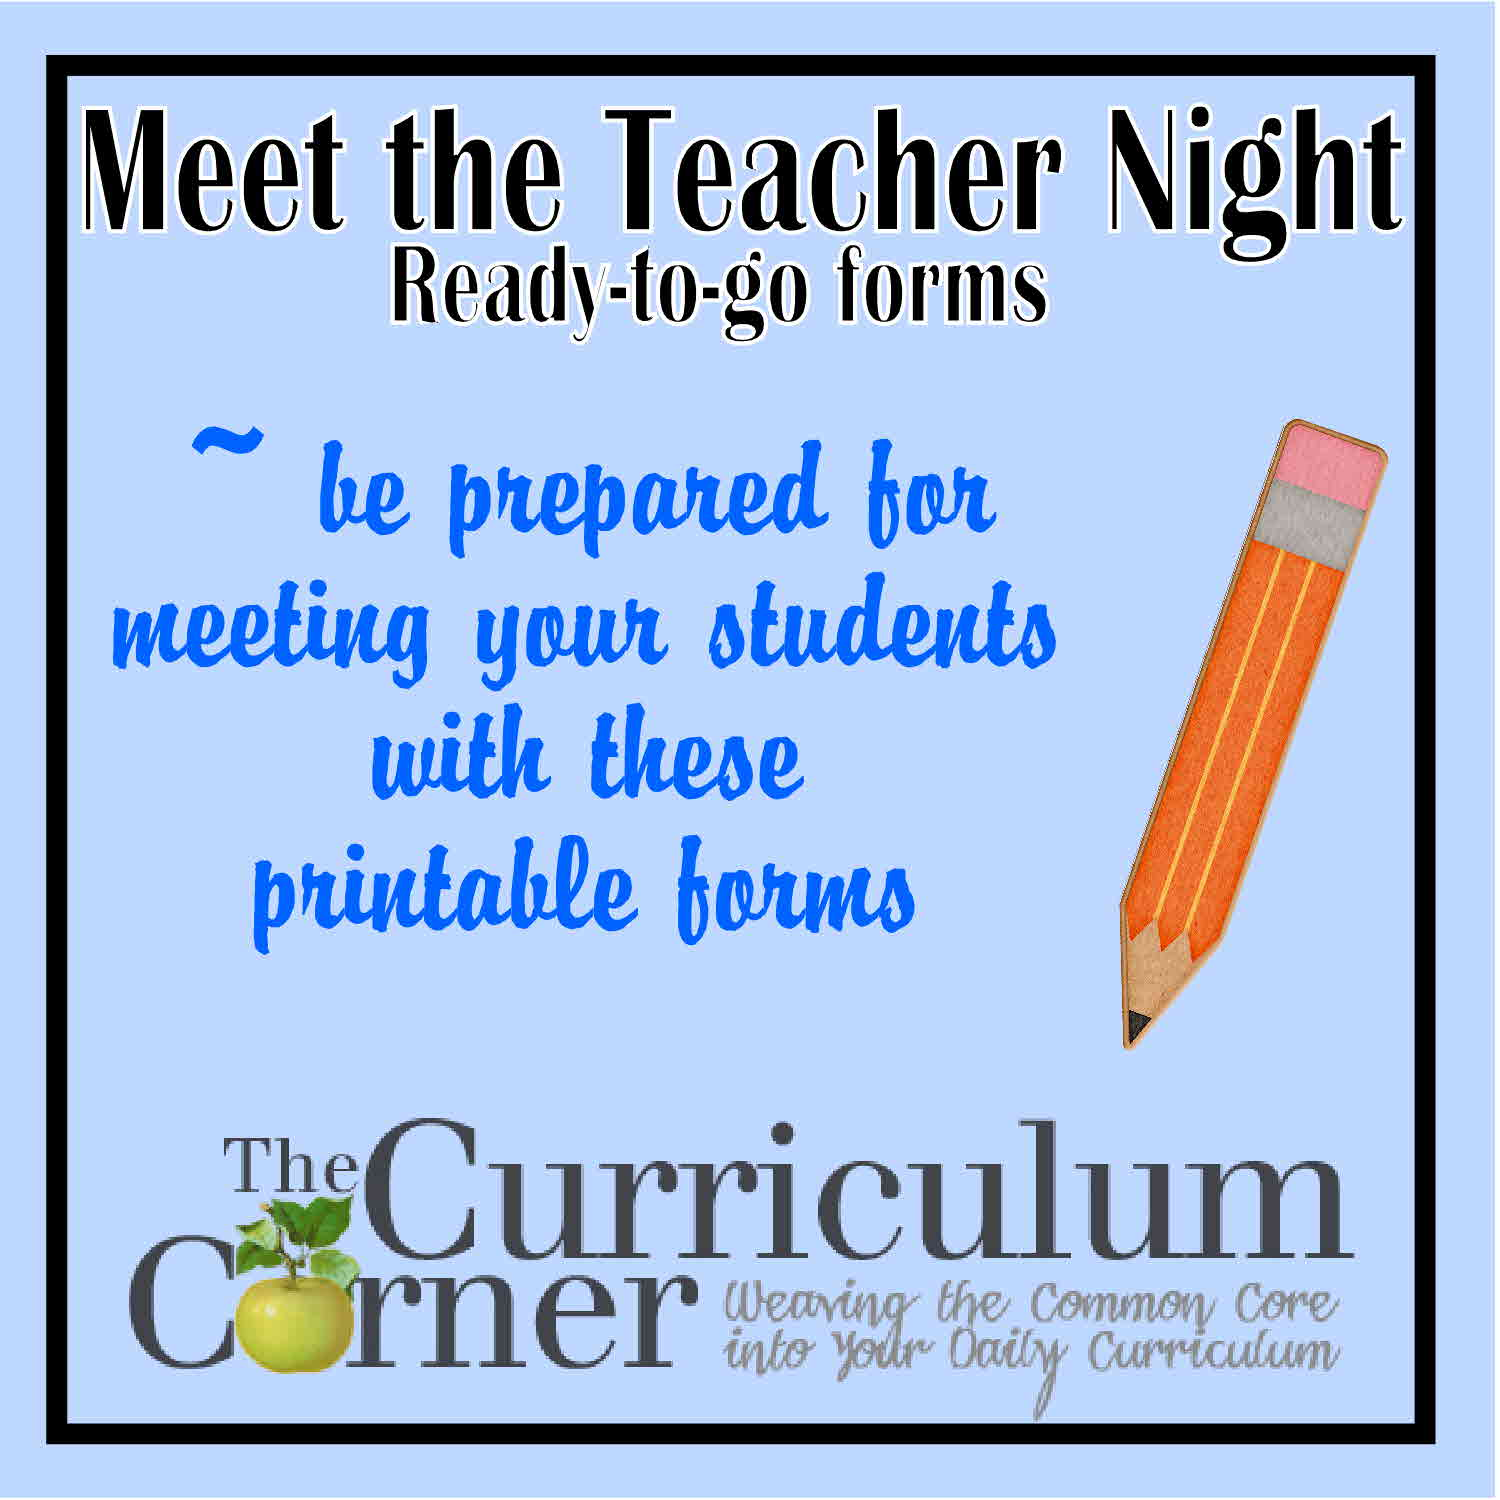 Meet the Teacher Event - The Curriculum Corner 123